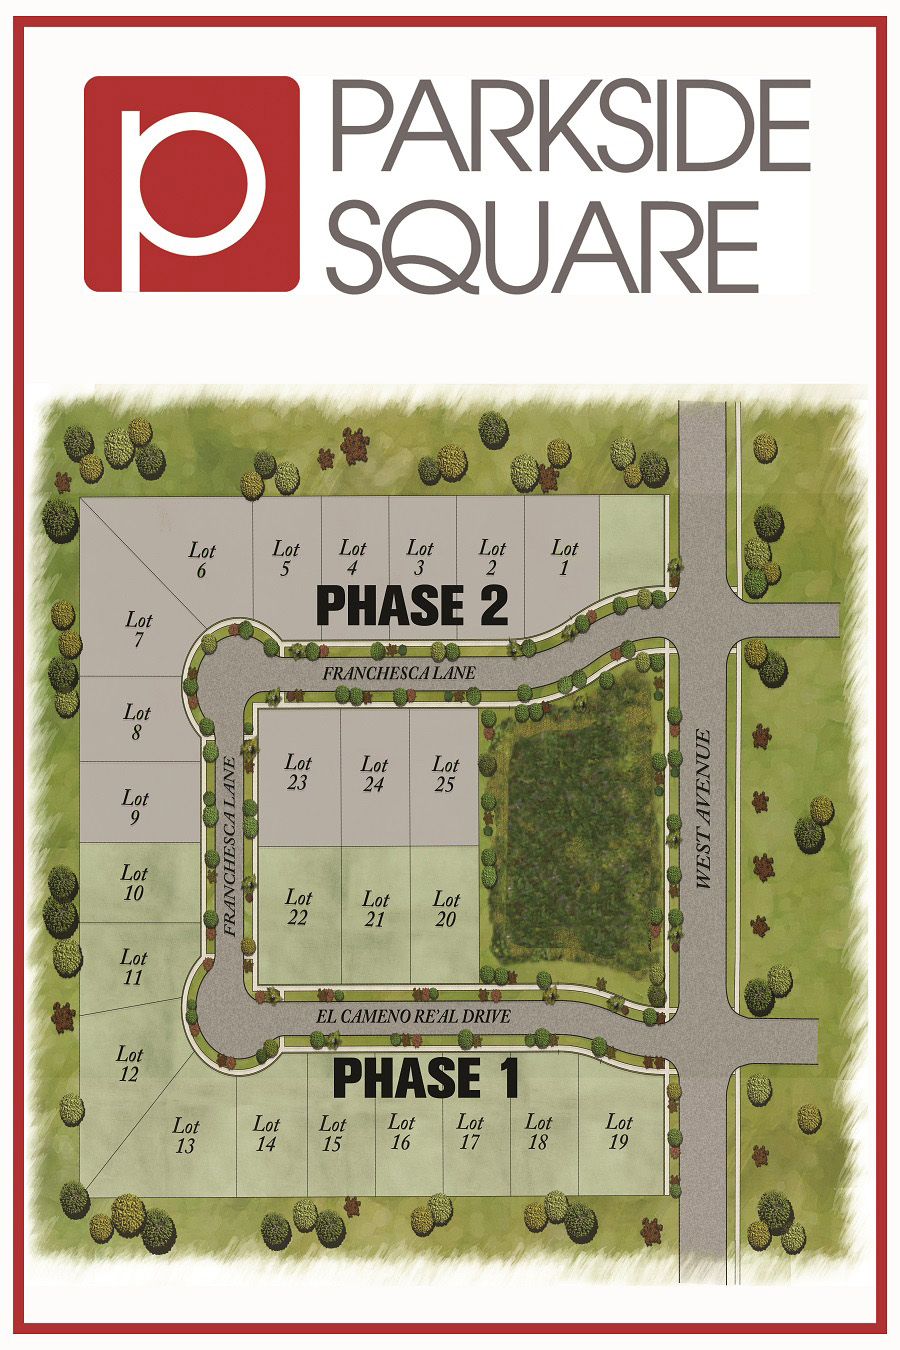 Parkside Square Site Map